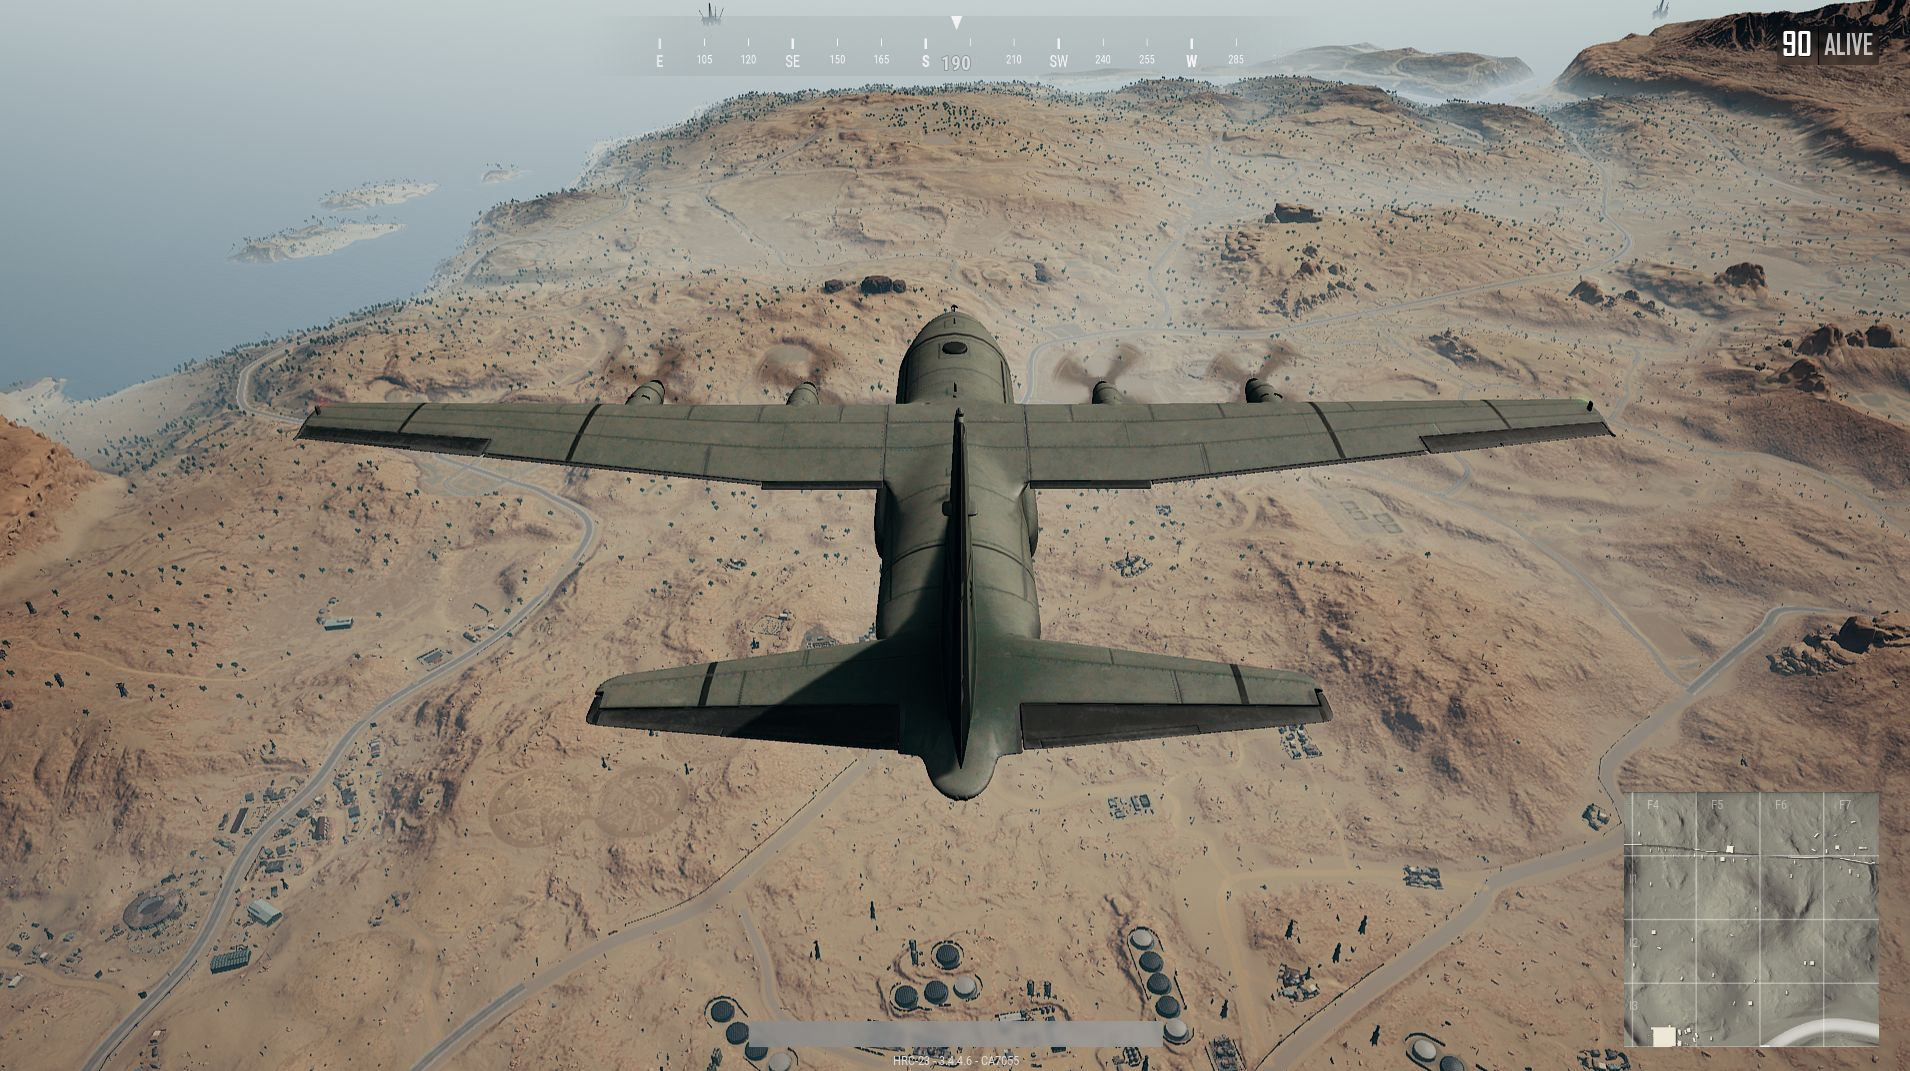 Pubg desert map guide how to win on the miramar desert for The miramar